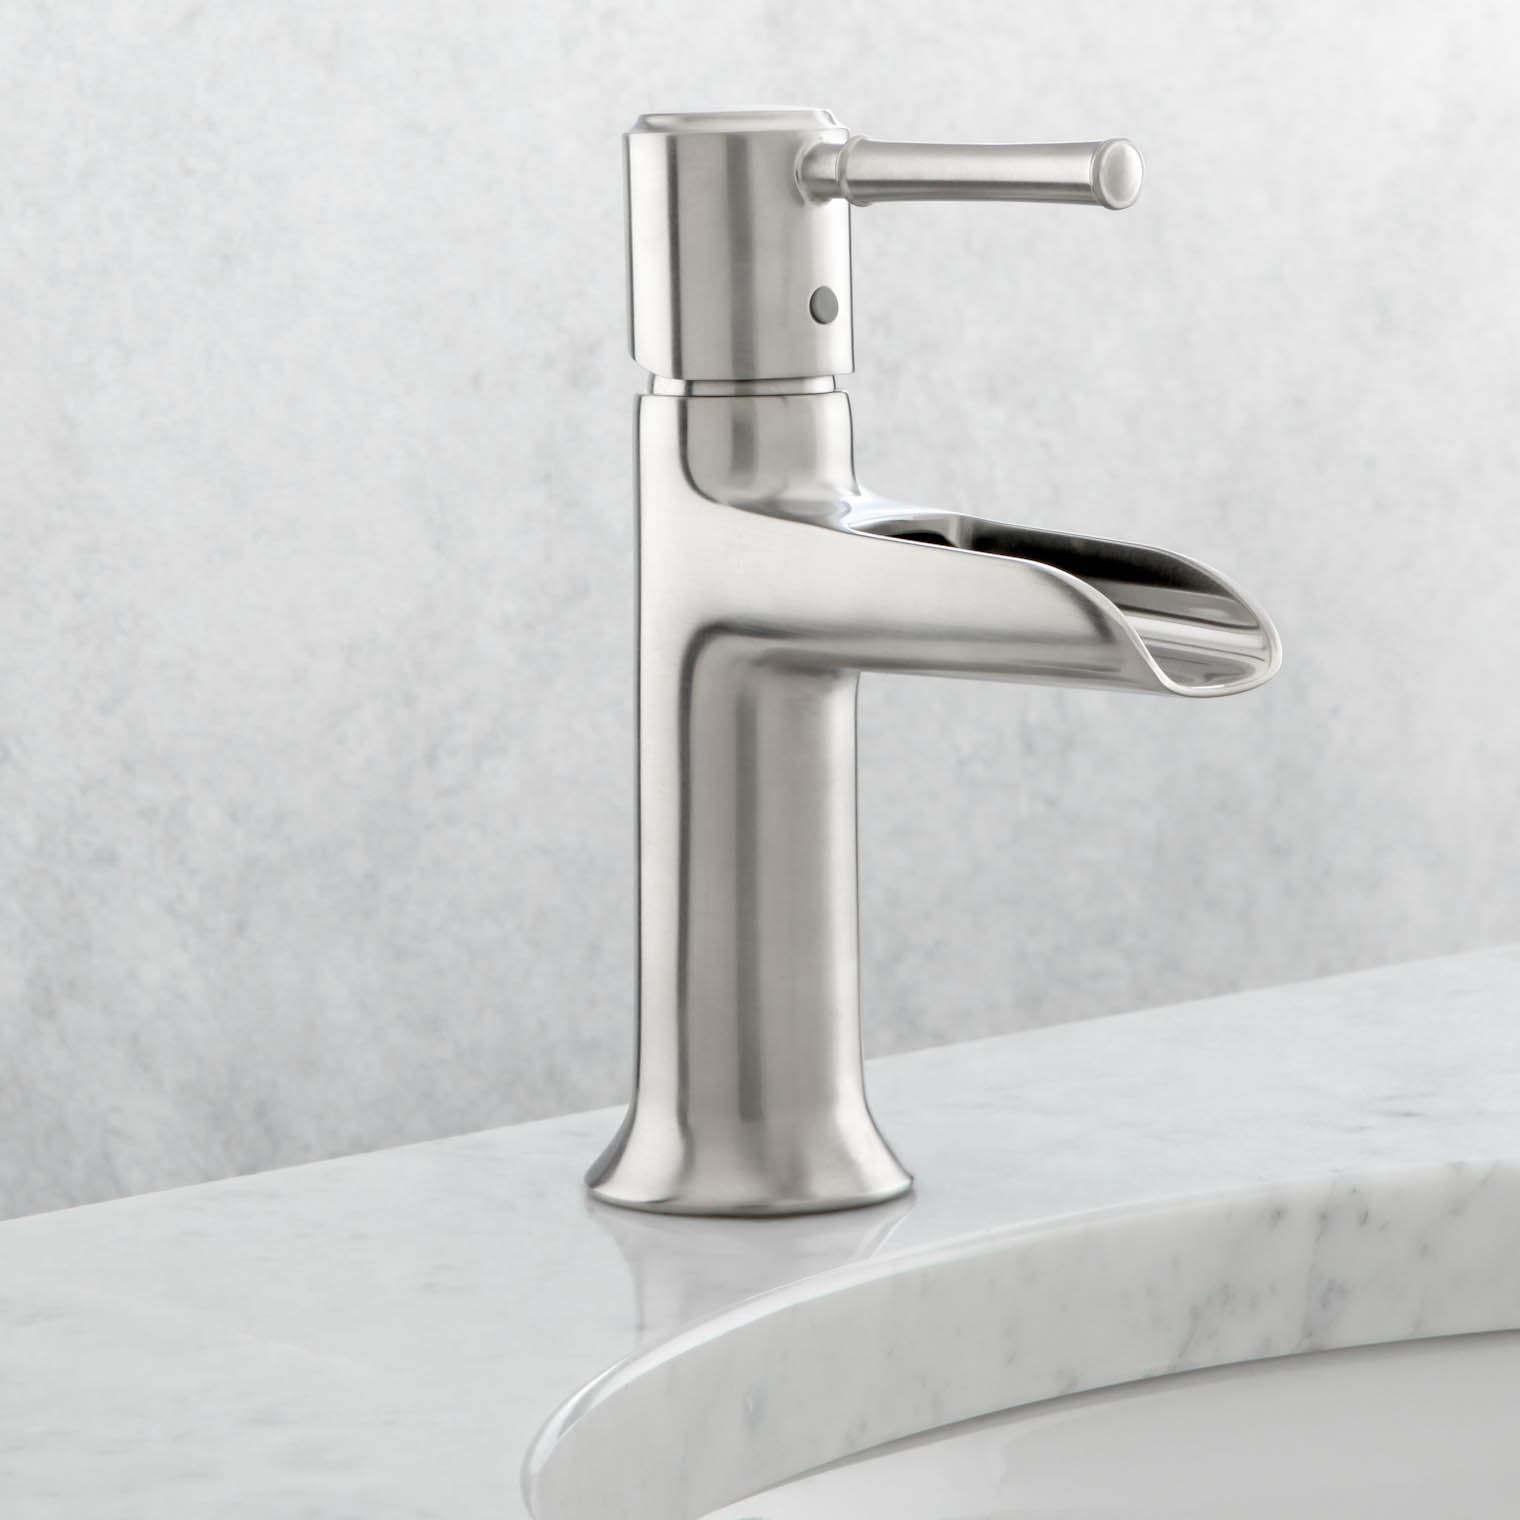 Ideas, fresh best high end bathroom faucet brands 23252 intended for dimensions 1520 x 1520  .